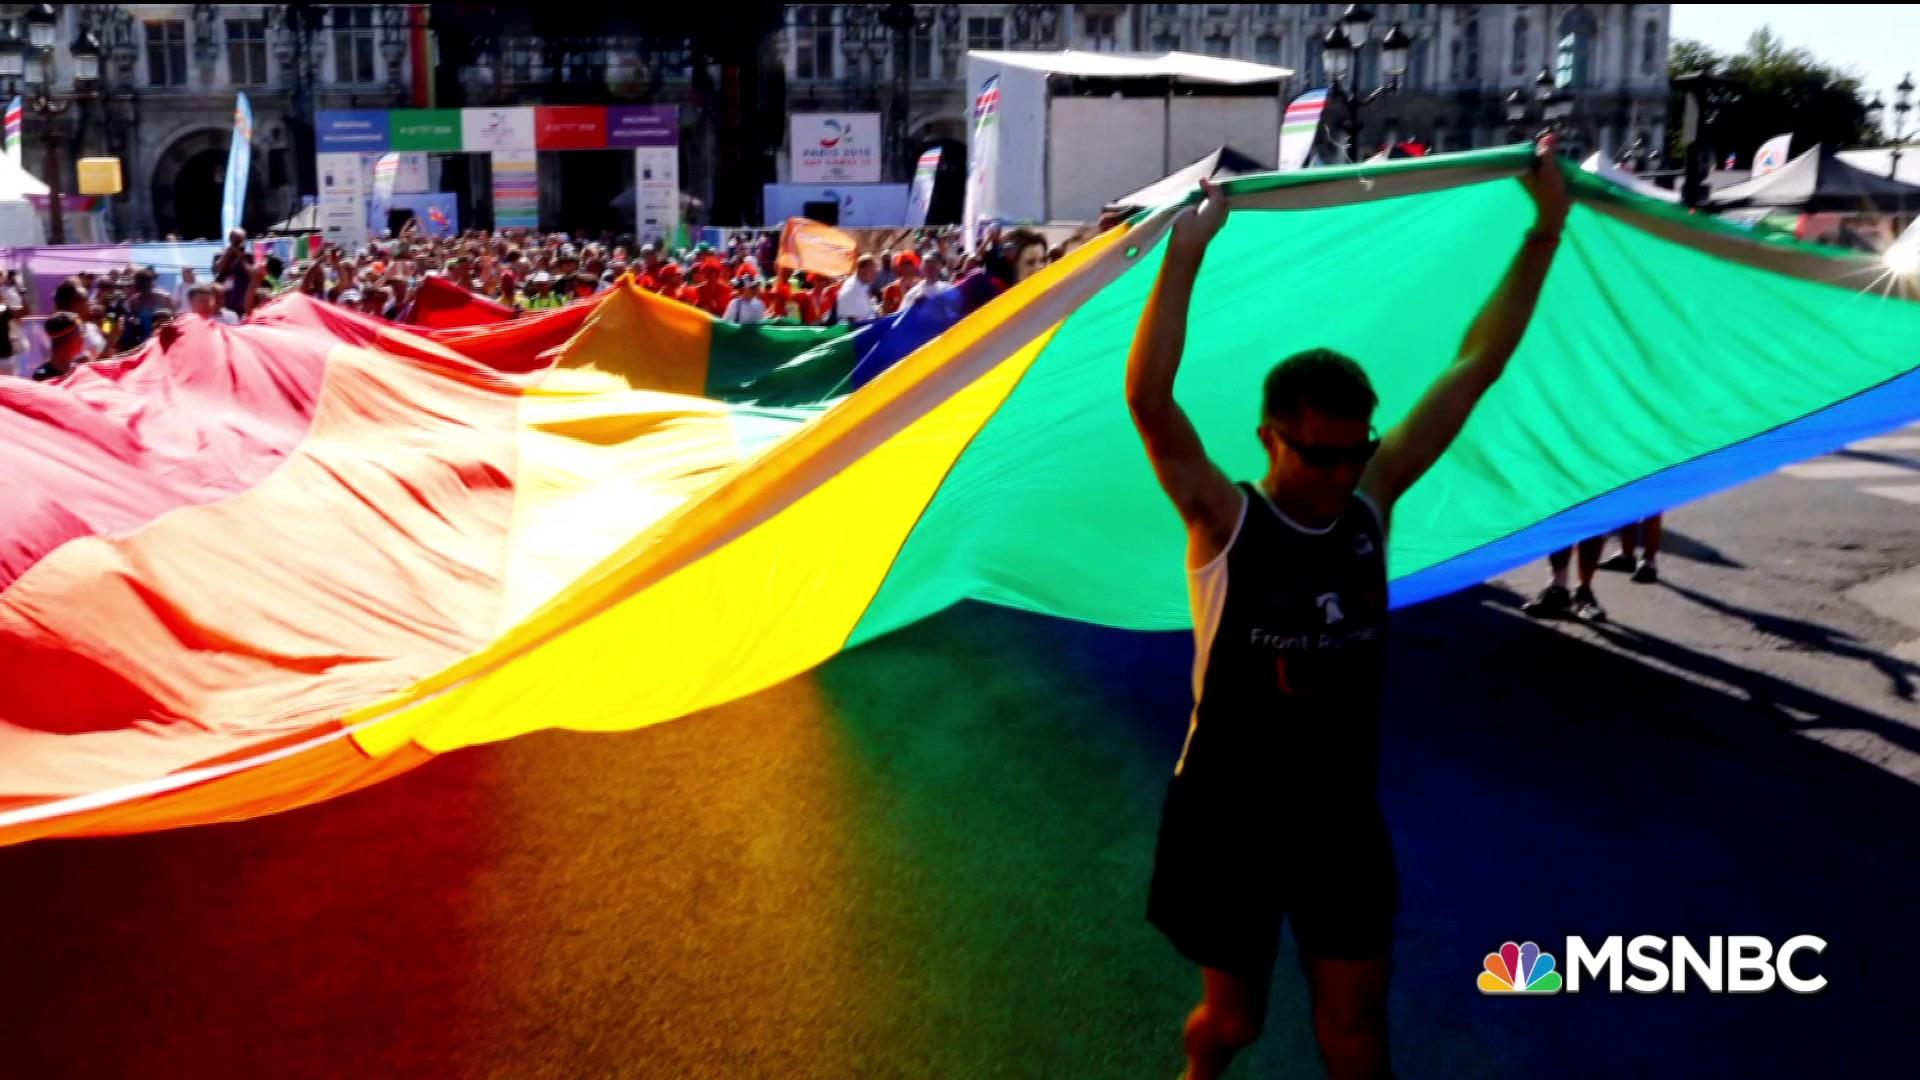 #BIGPICTURE: Paris hosts 'Gay Games' promoting LGBT rights